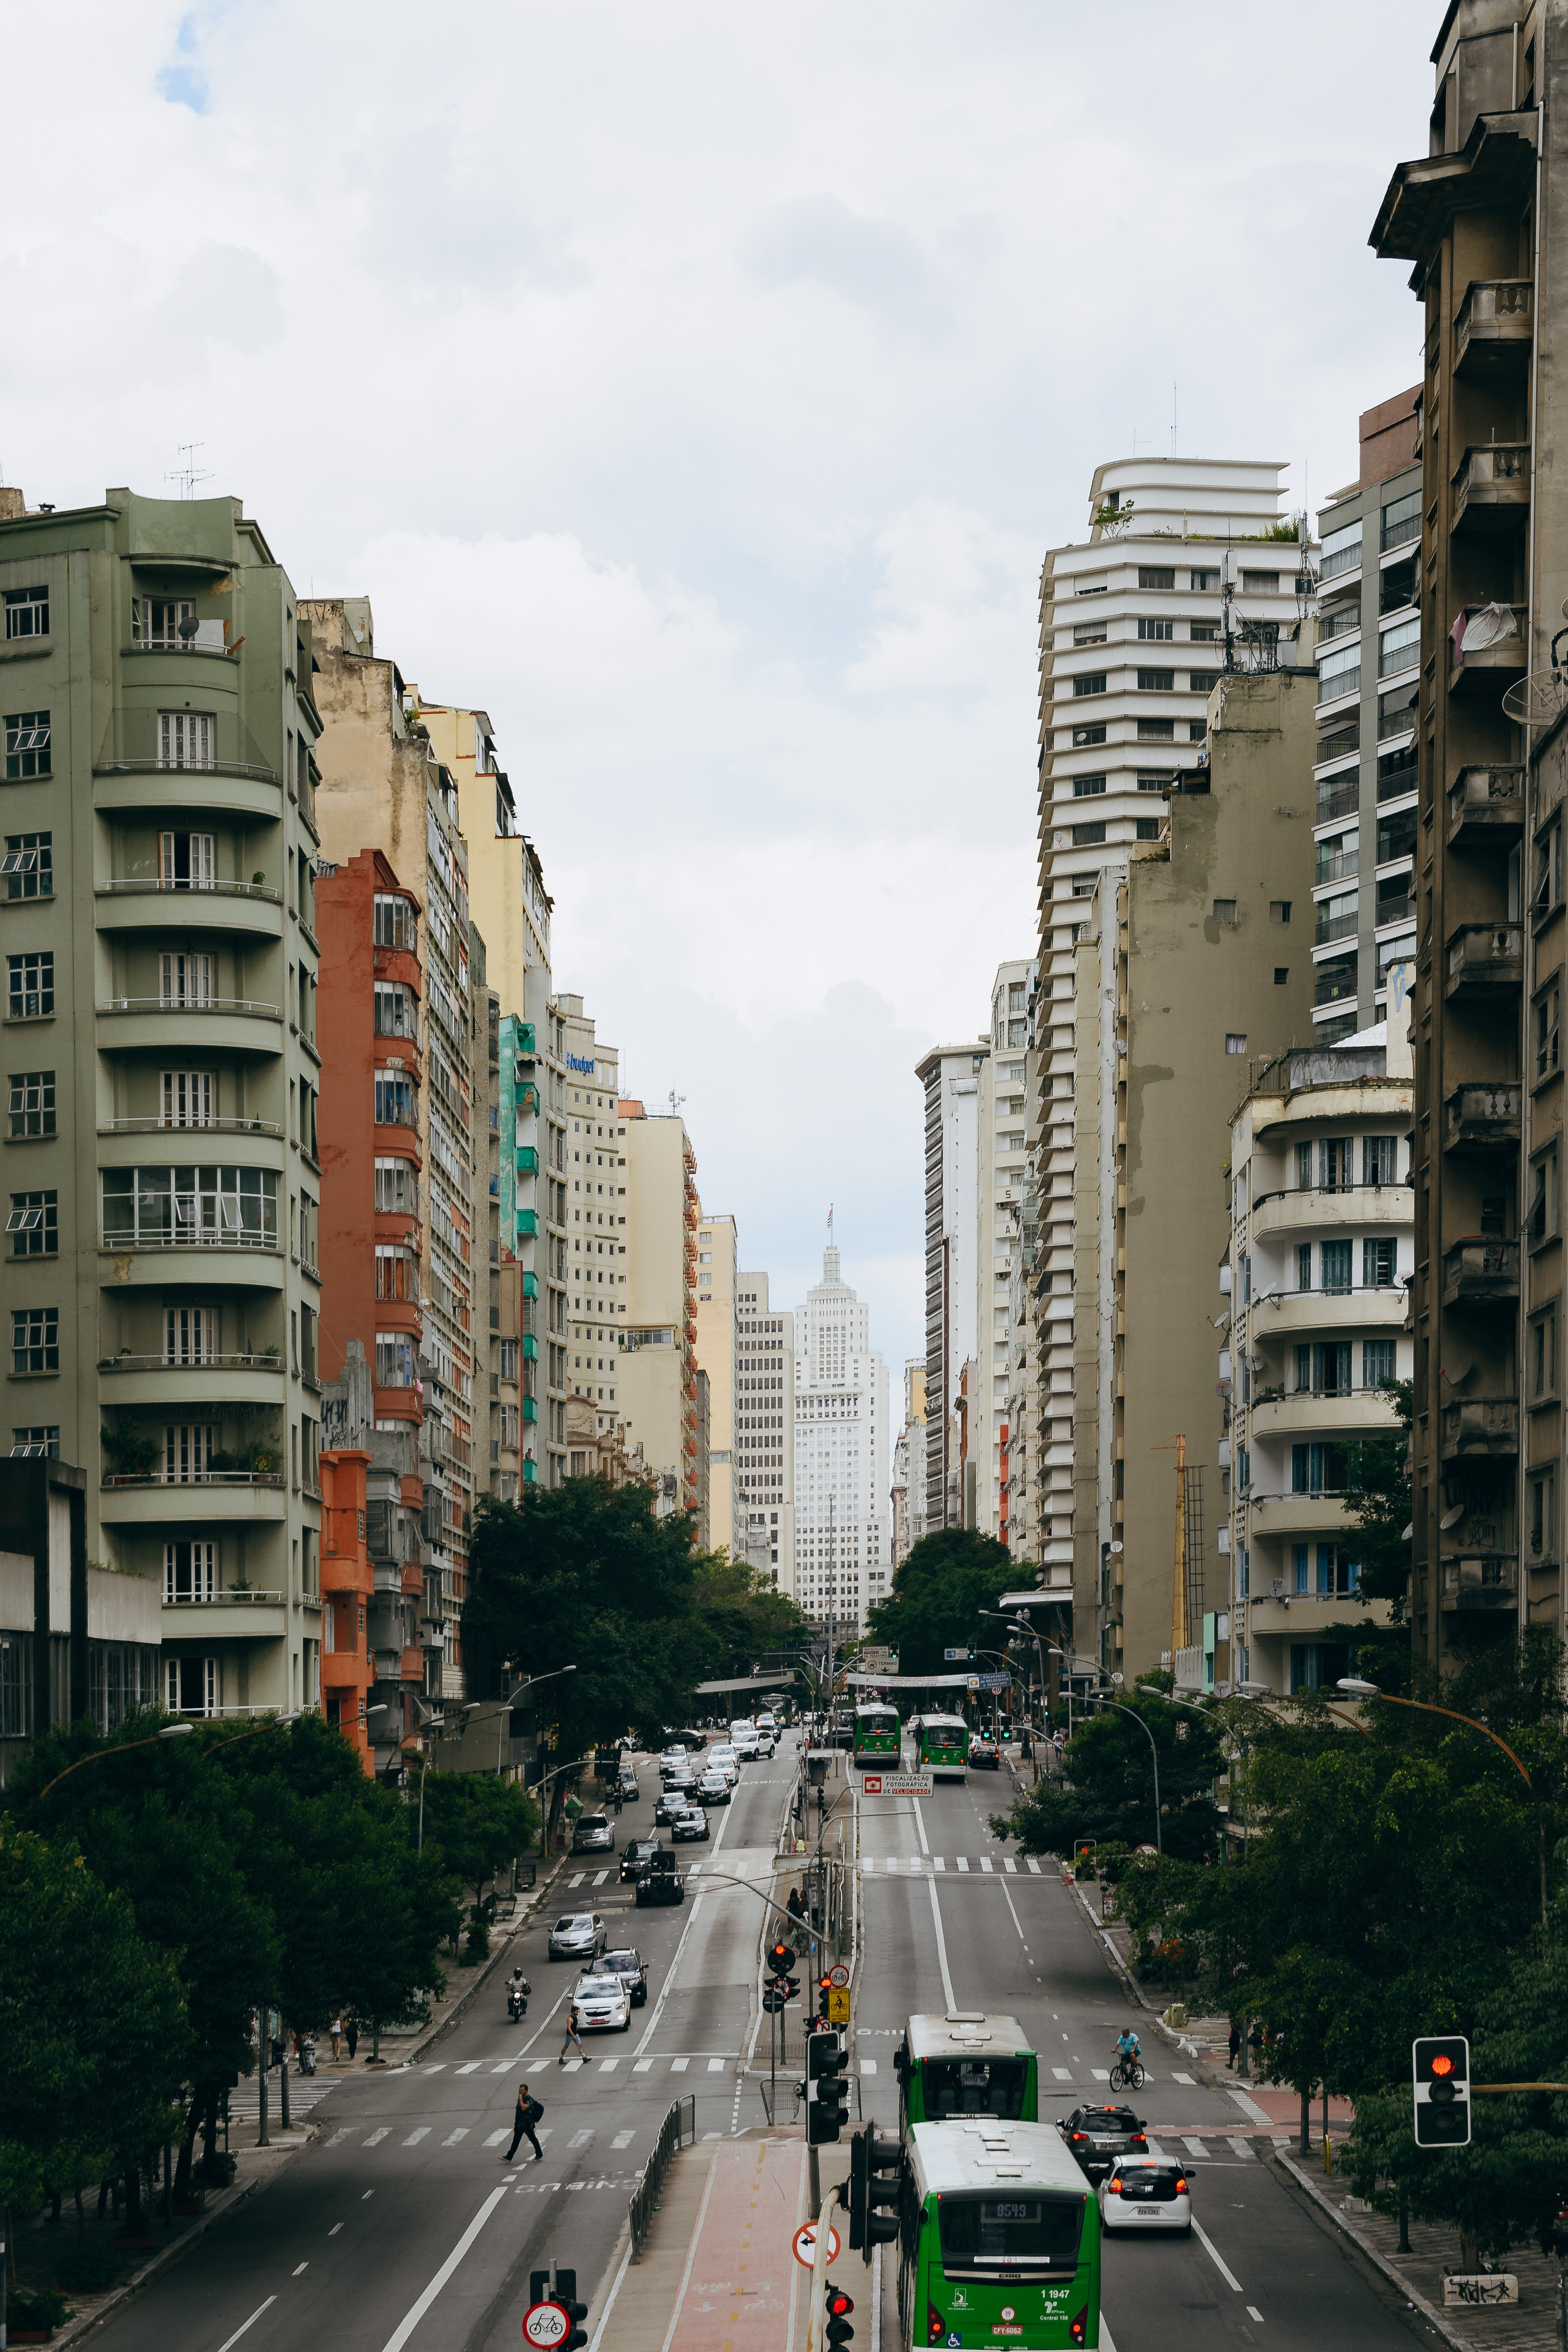 City Buildings, Architectural design, Outdoors, Urban, Trees, HQ Photo